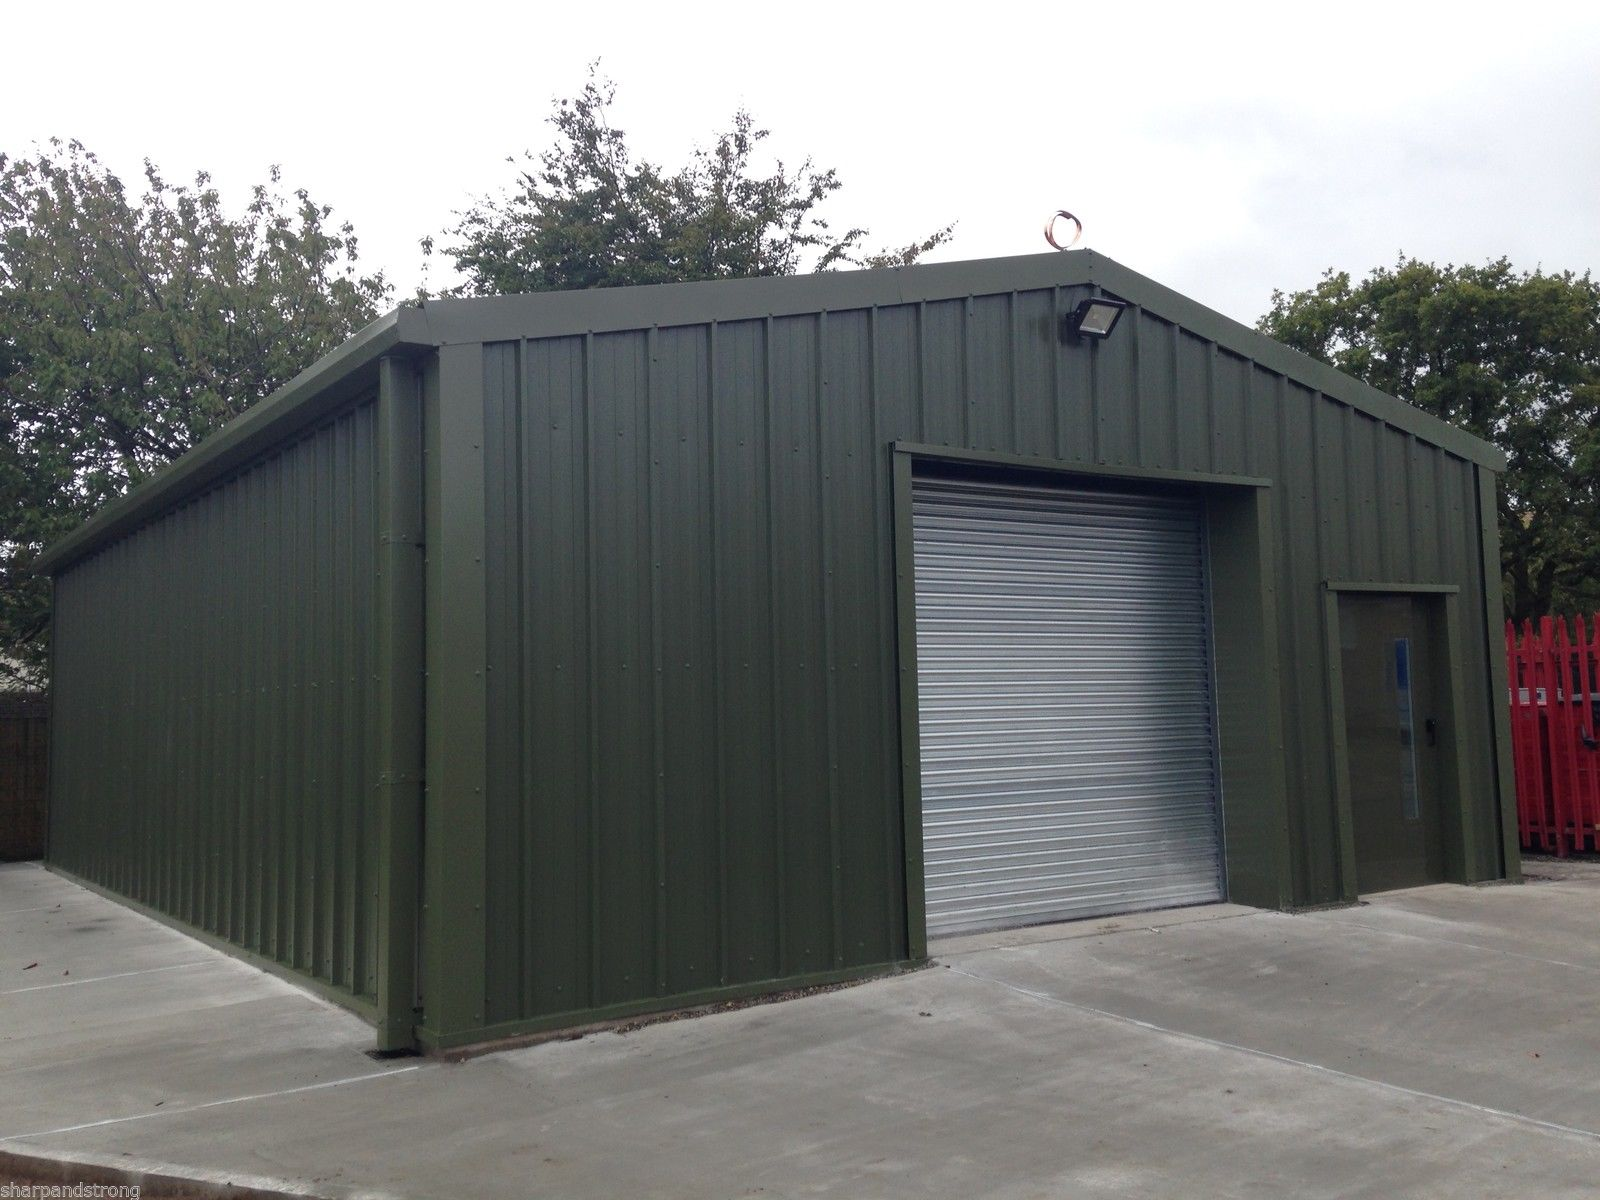 Steel garages and workshops sharp and strong ltd for Garages and workshops